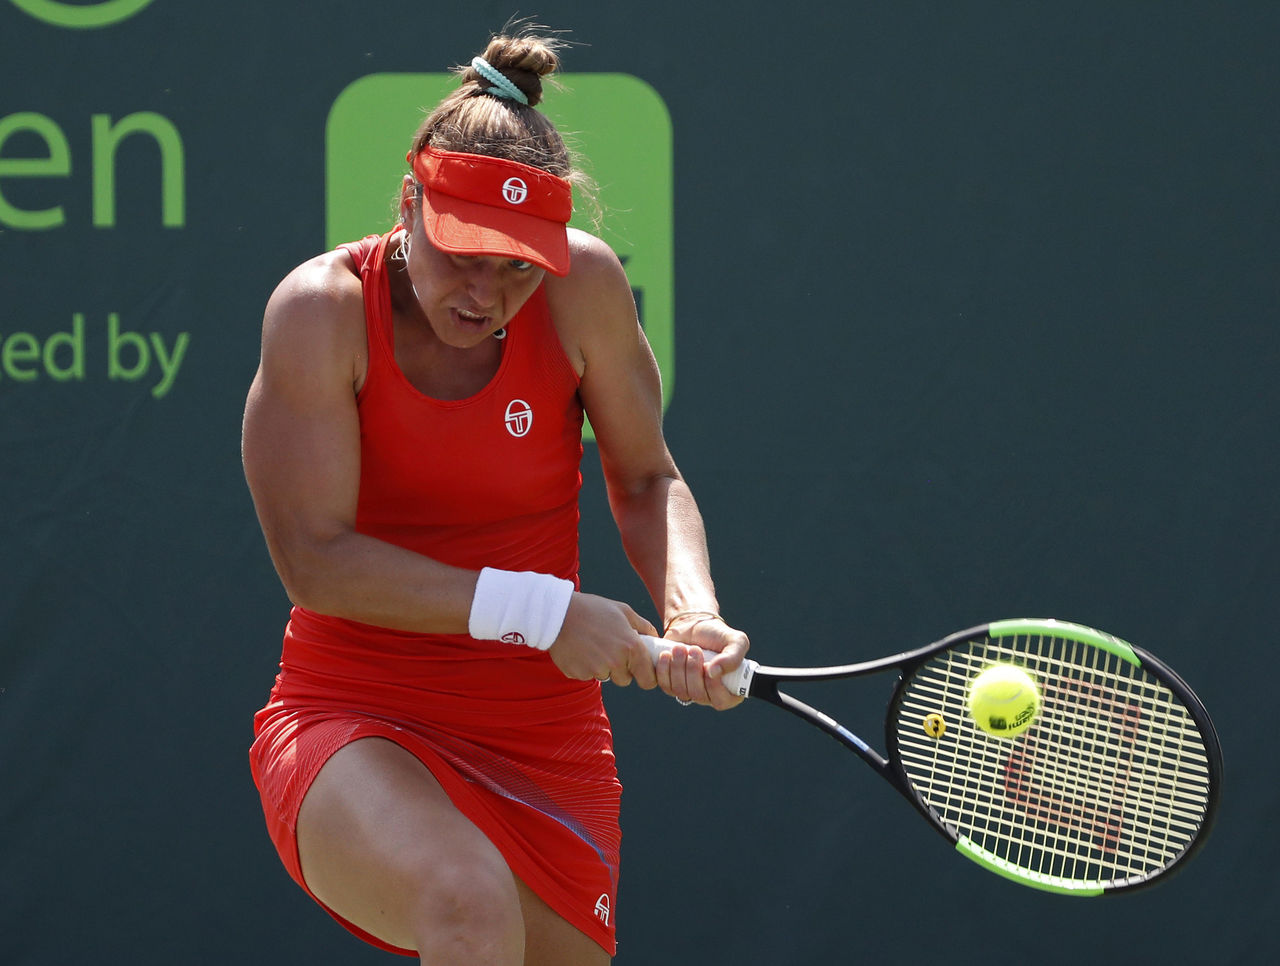 Cropped 2017 03 23t181733z 1349310615 nocid rtrmadp 3 tennis miami open